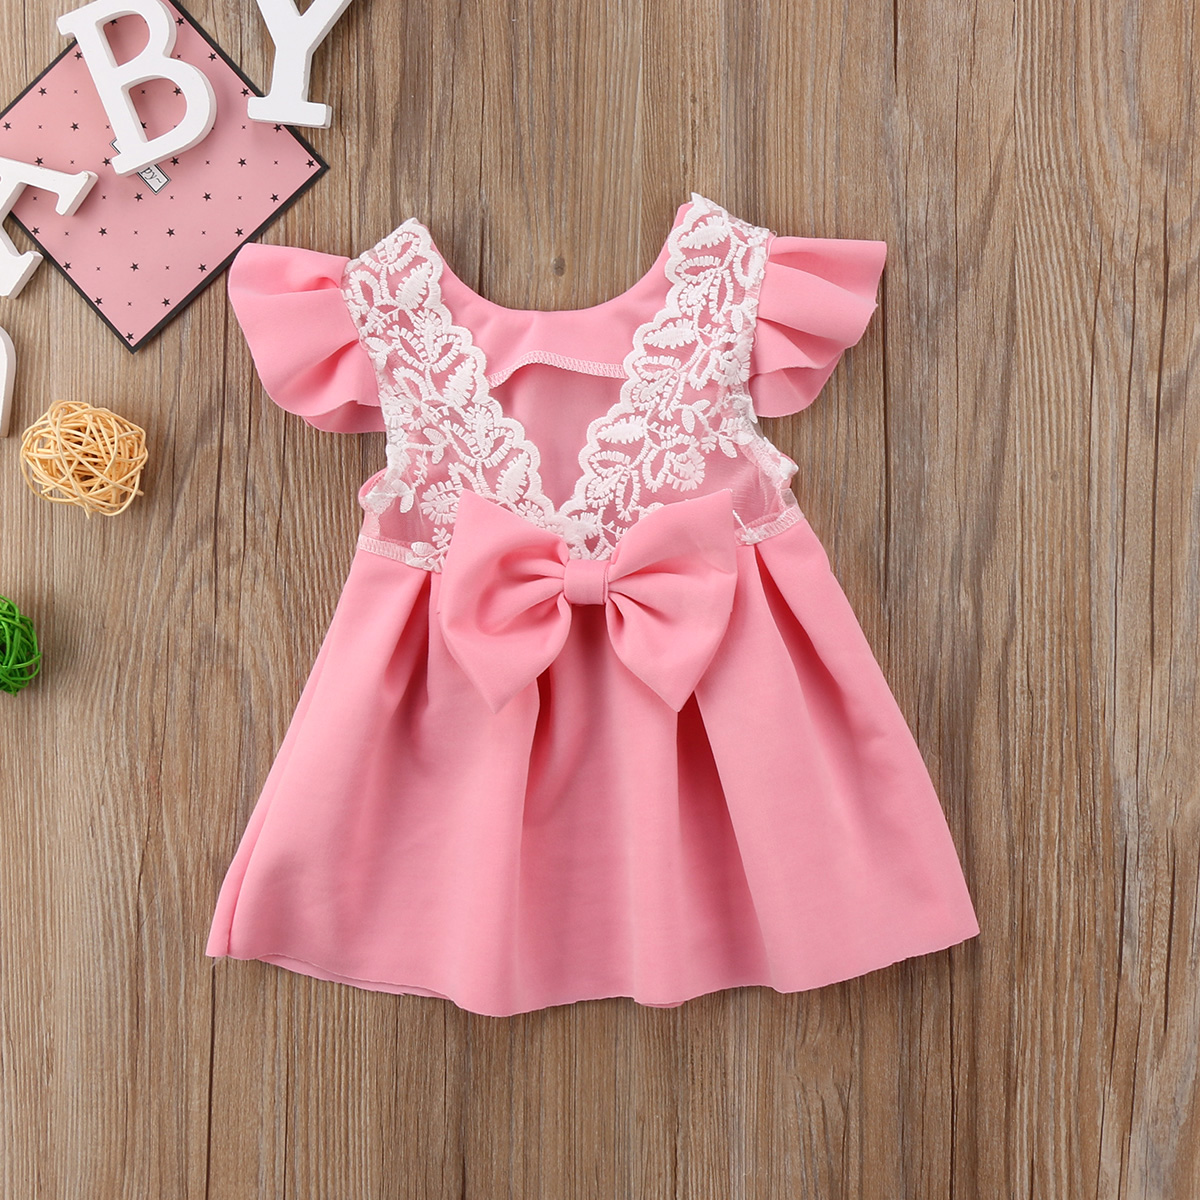 Pudcoco Baby Girls Dress Toddler Girls Backless Lace Bow Princess Dresses Tutu Party Wedding birthday Dress for girls Easter pudcoco baby girls dress toddler girls backless lace bow princess dresses tutu party wedding birthday dress for girls easter